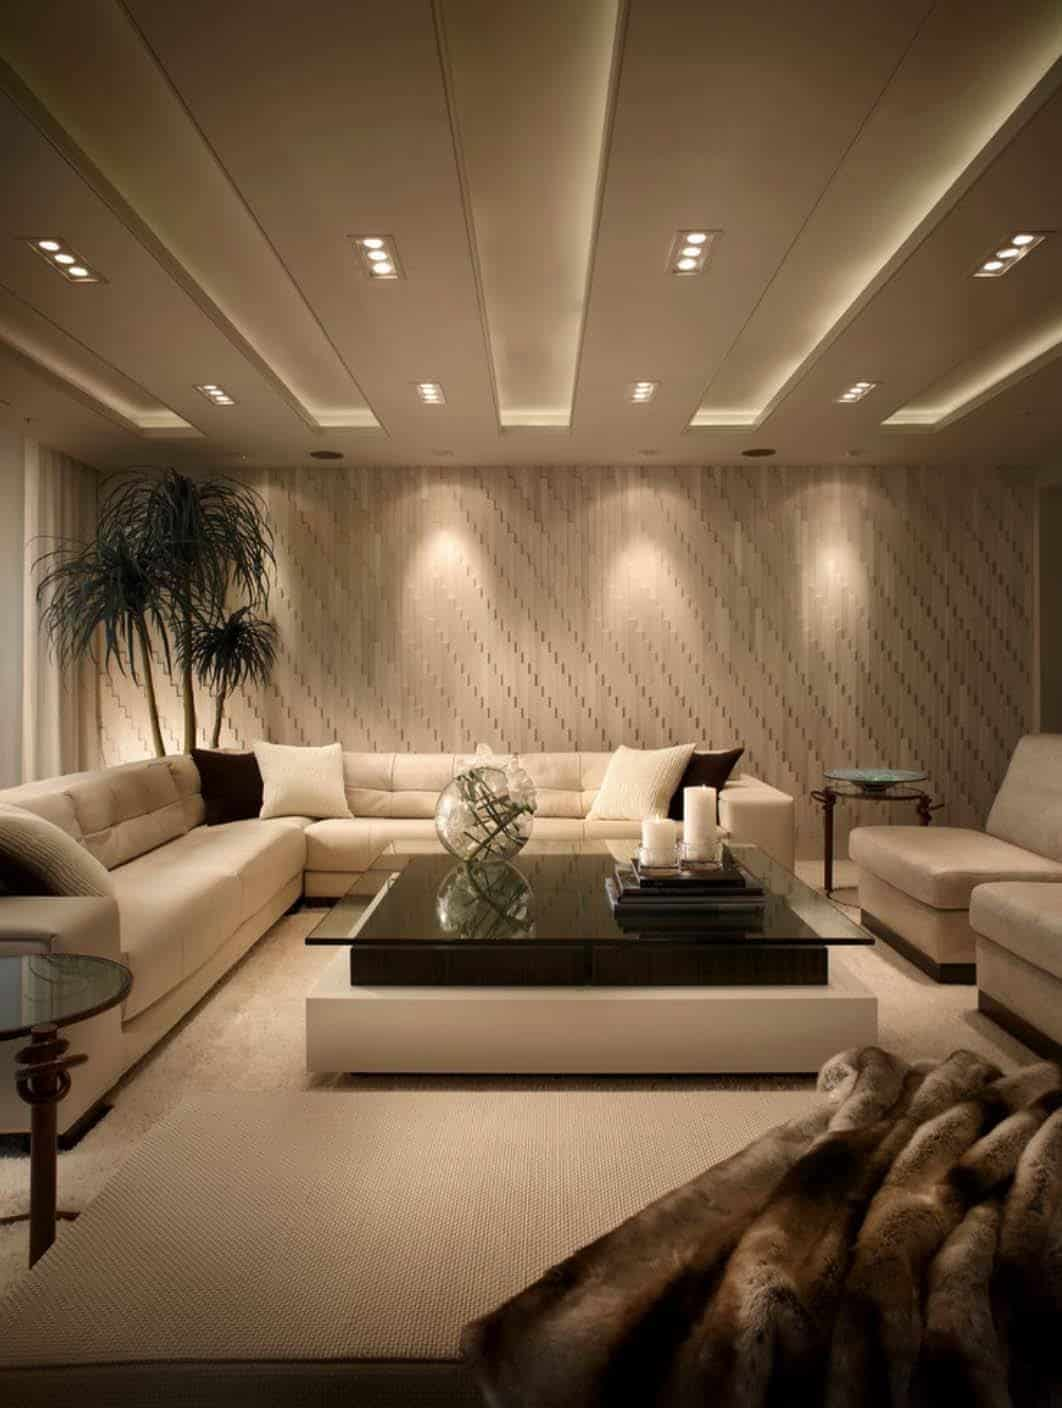 Contemporary Residence-Interiors by Steven G-02-1 Kindesign